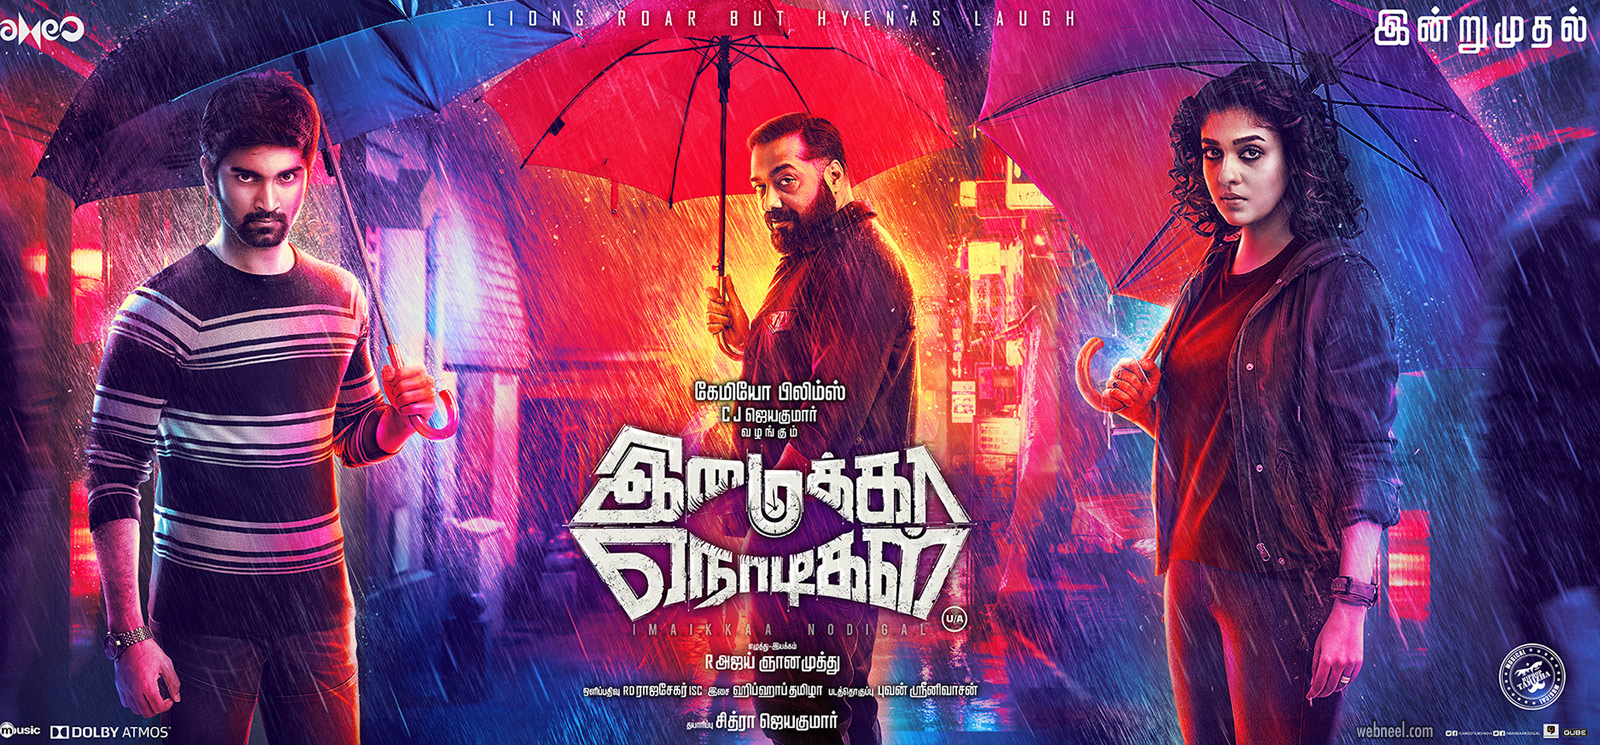 movie poster design kollywood tamil imaikanodigal